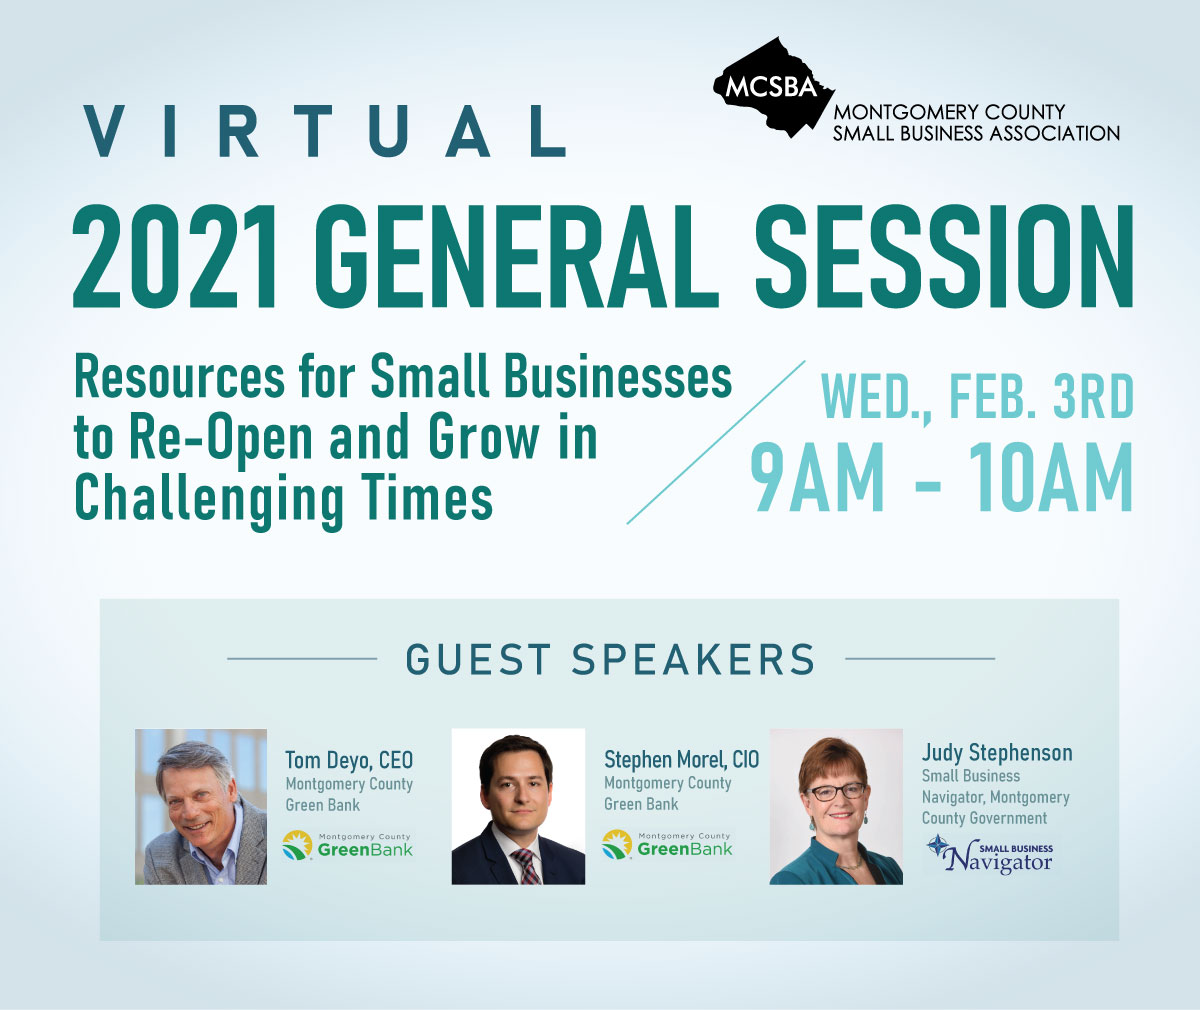 Resources for Business to Re-Open and Grow in Challenging Times, 02/03/2021